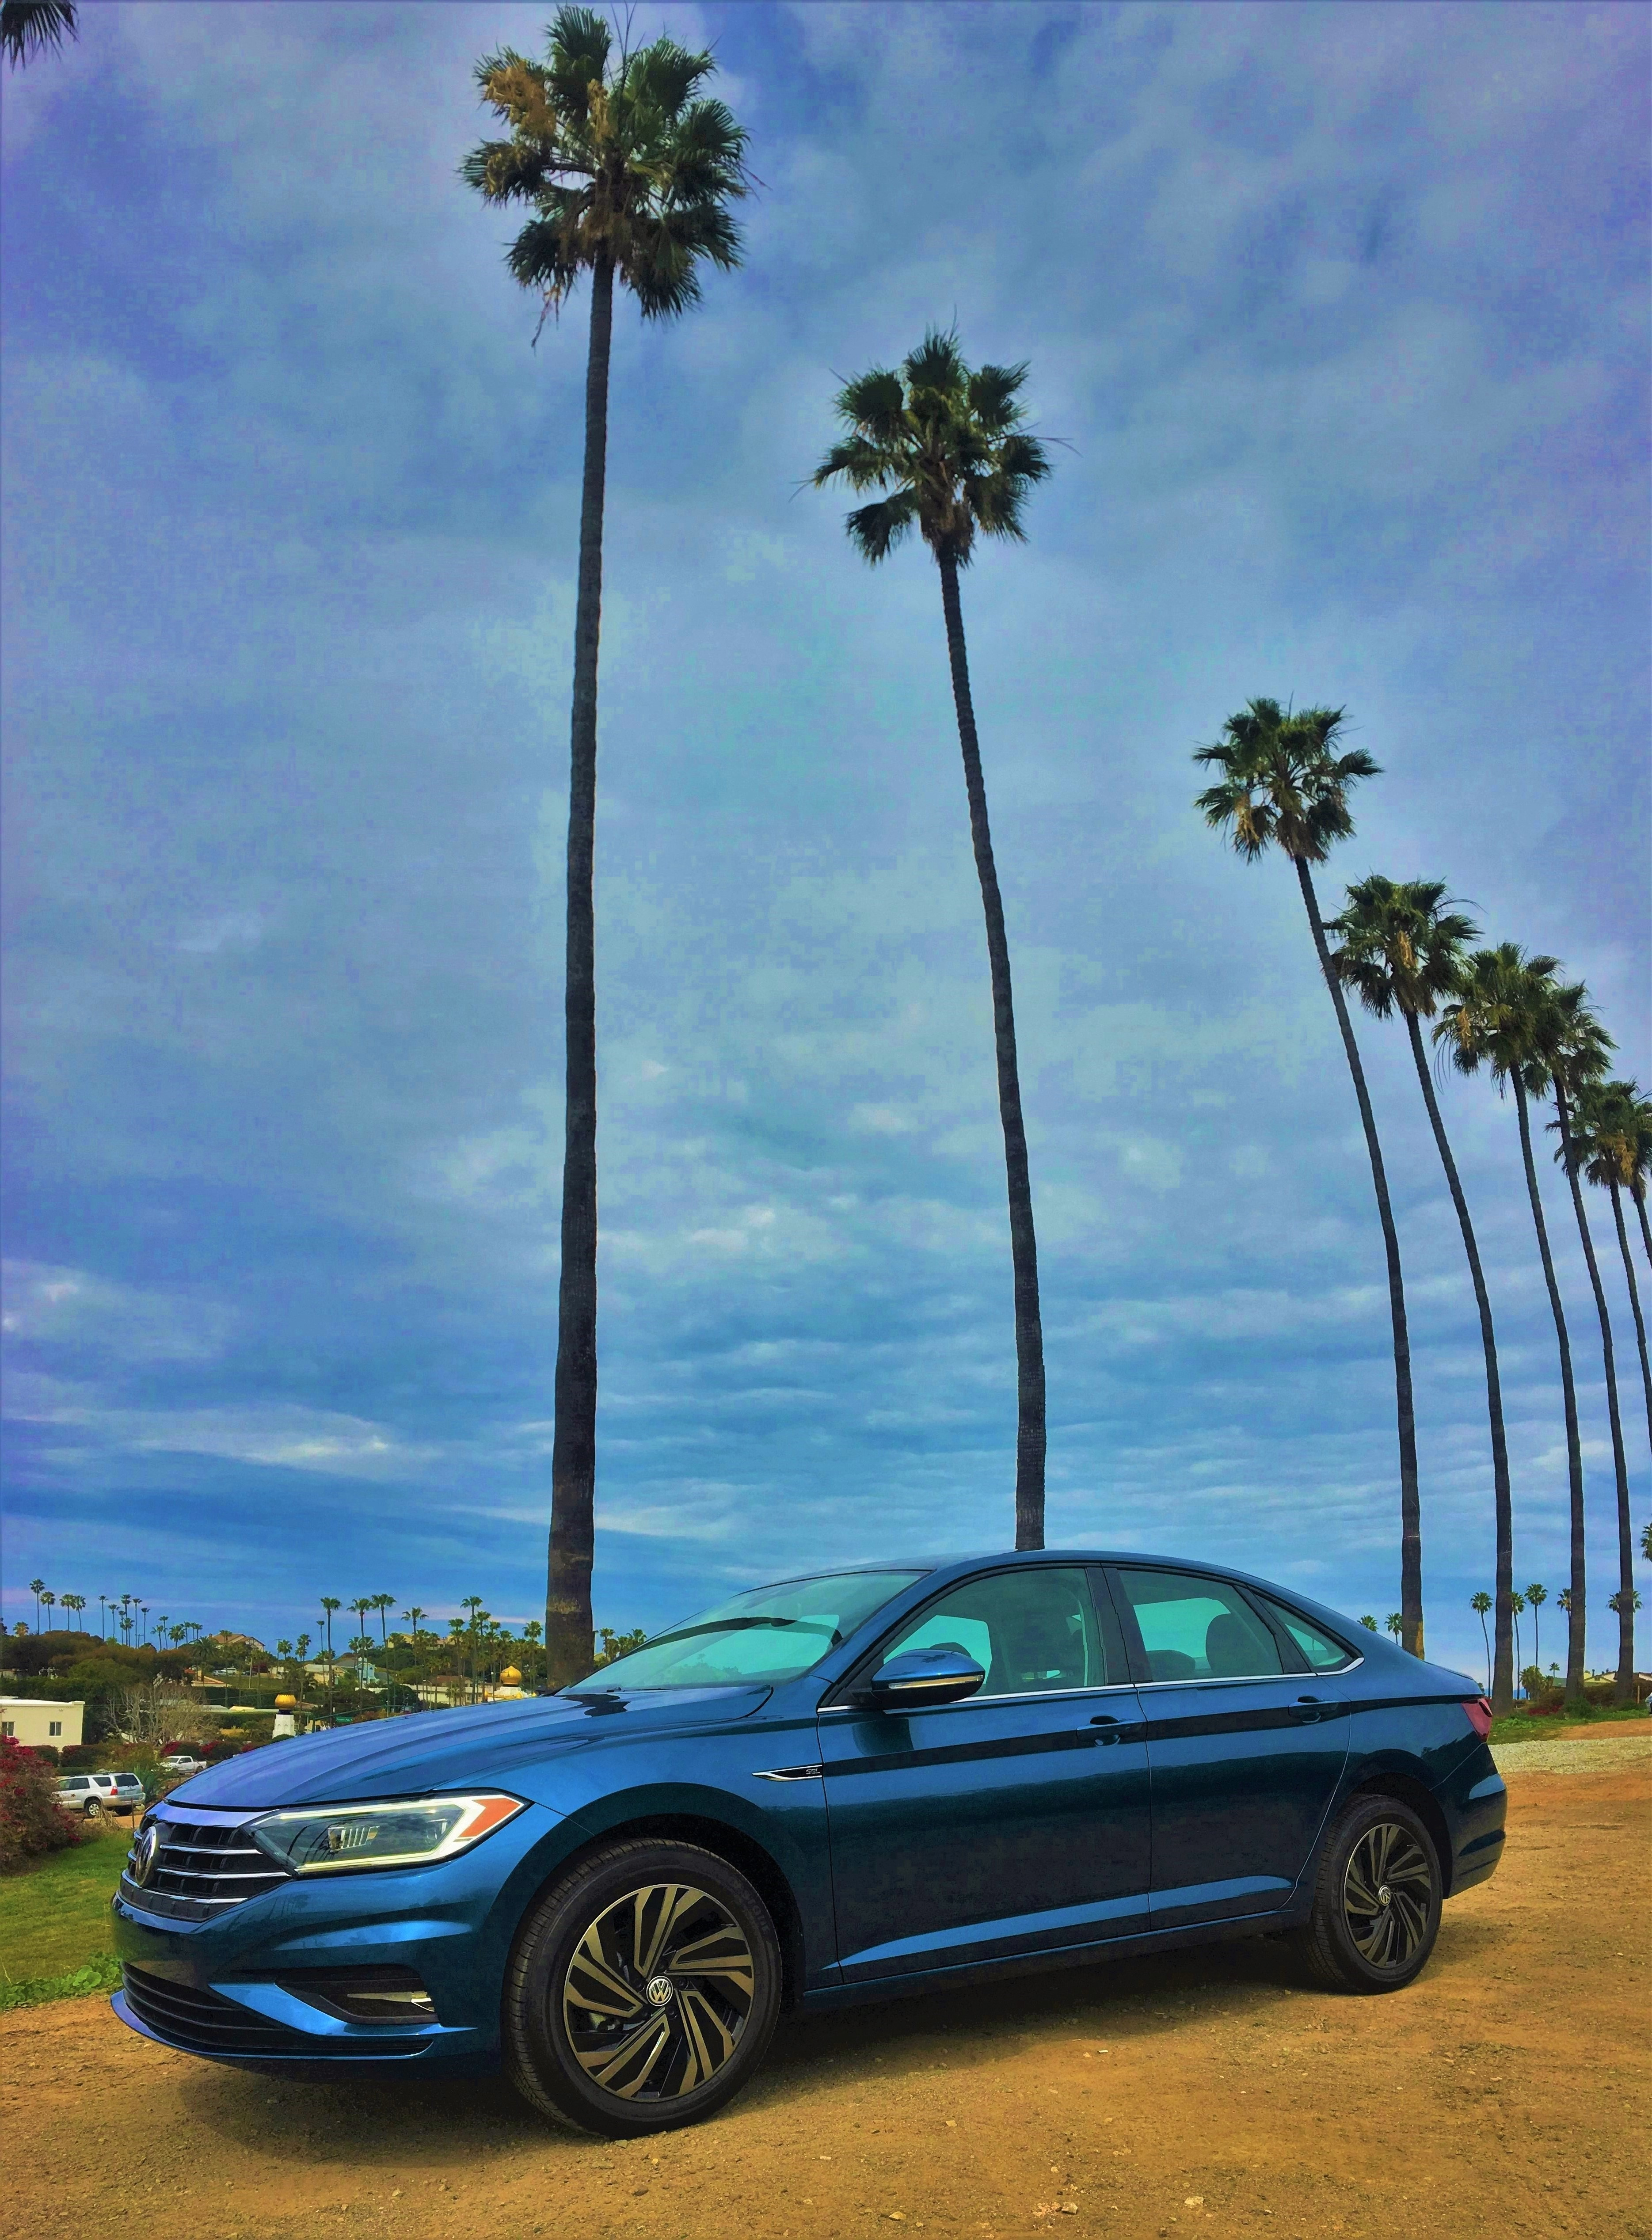 2019 Jetta Under Palm Trees